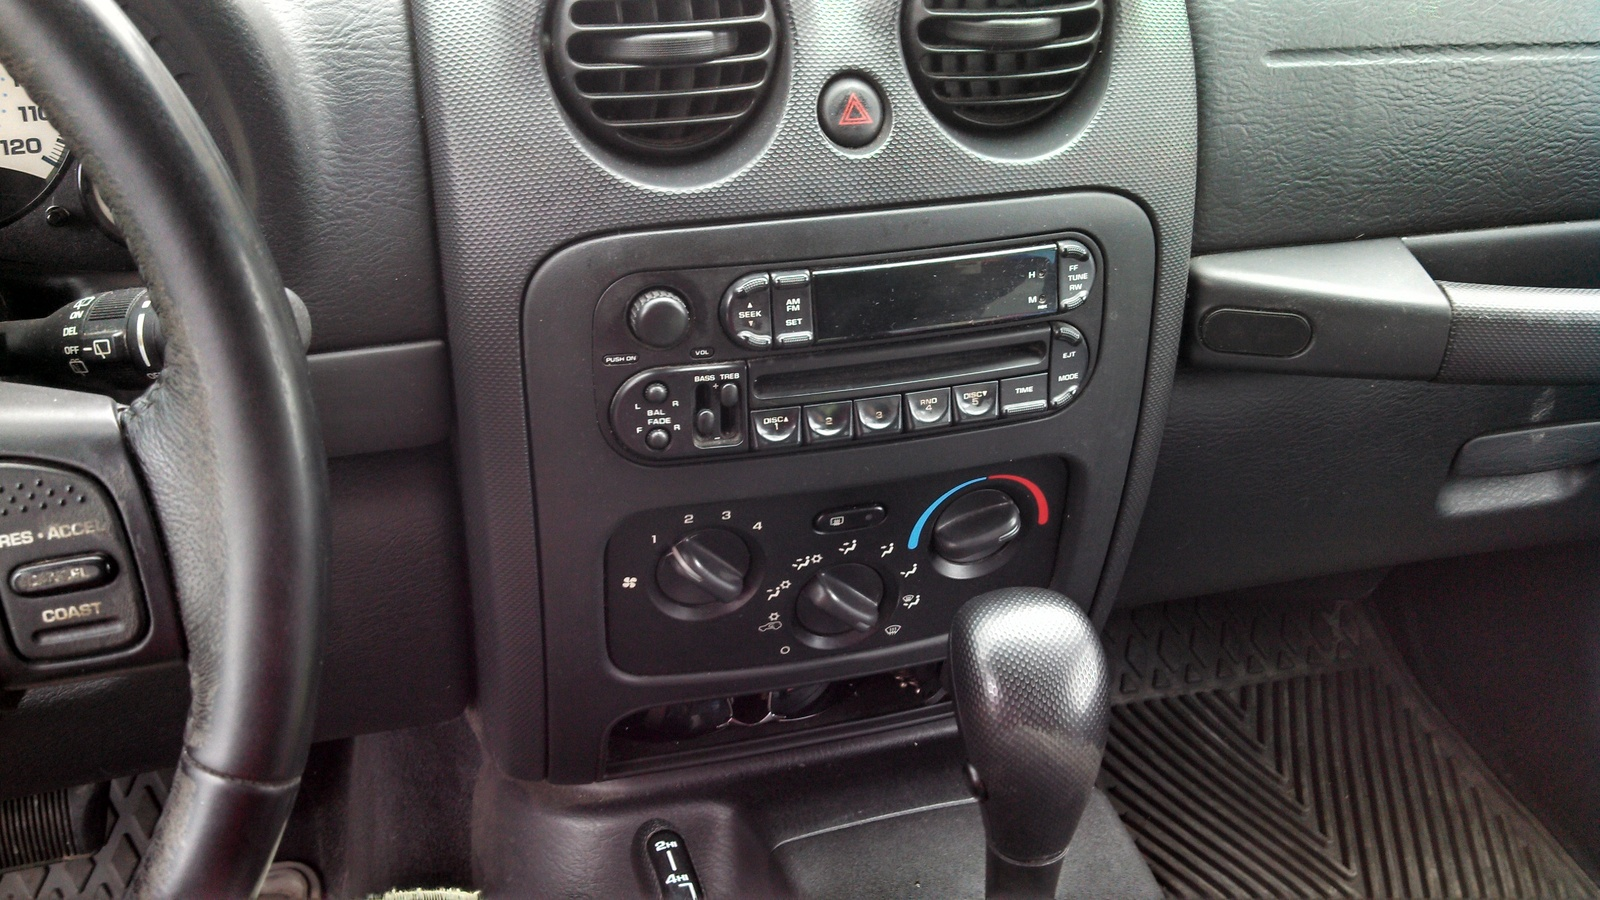 2004 jeep liberty interior pictures to pin on pinterest